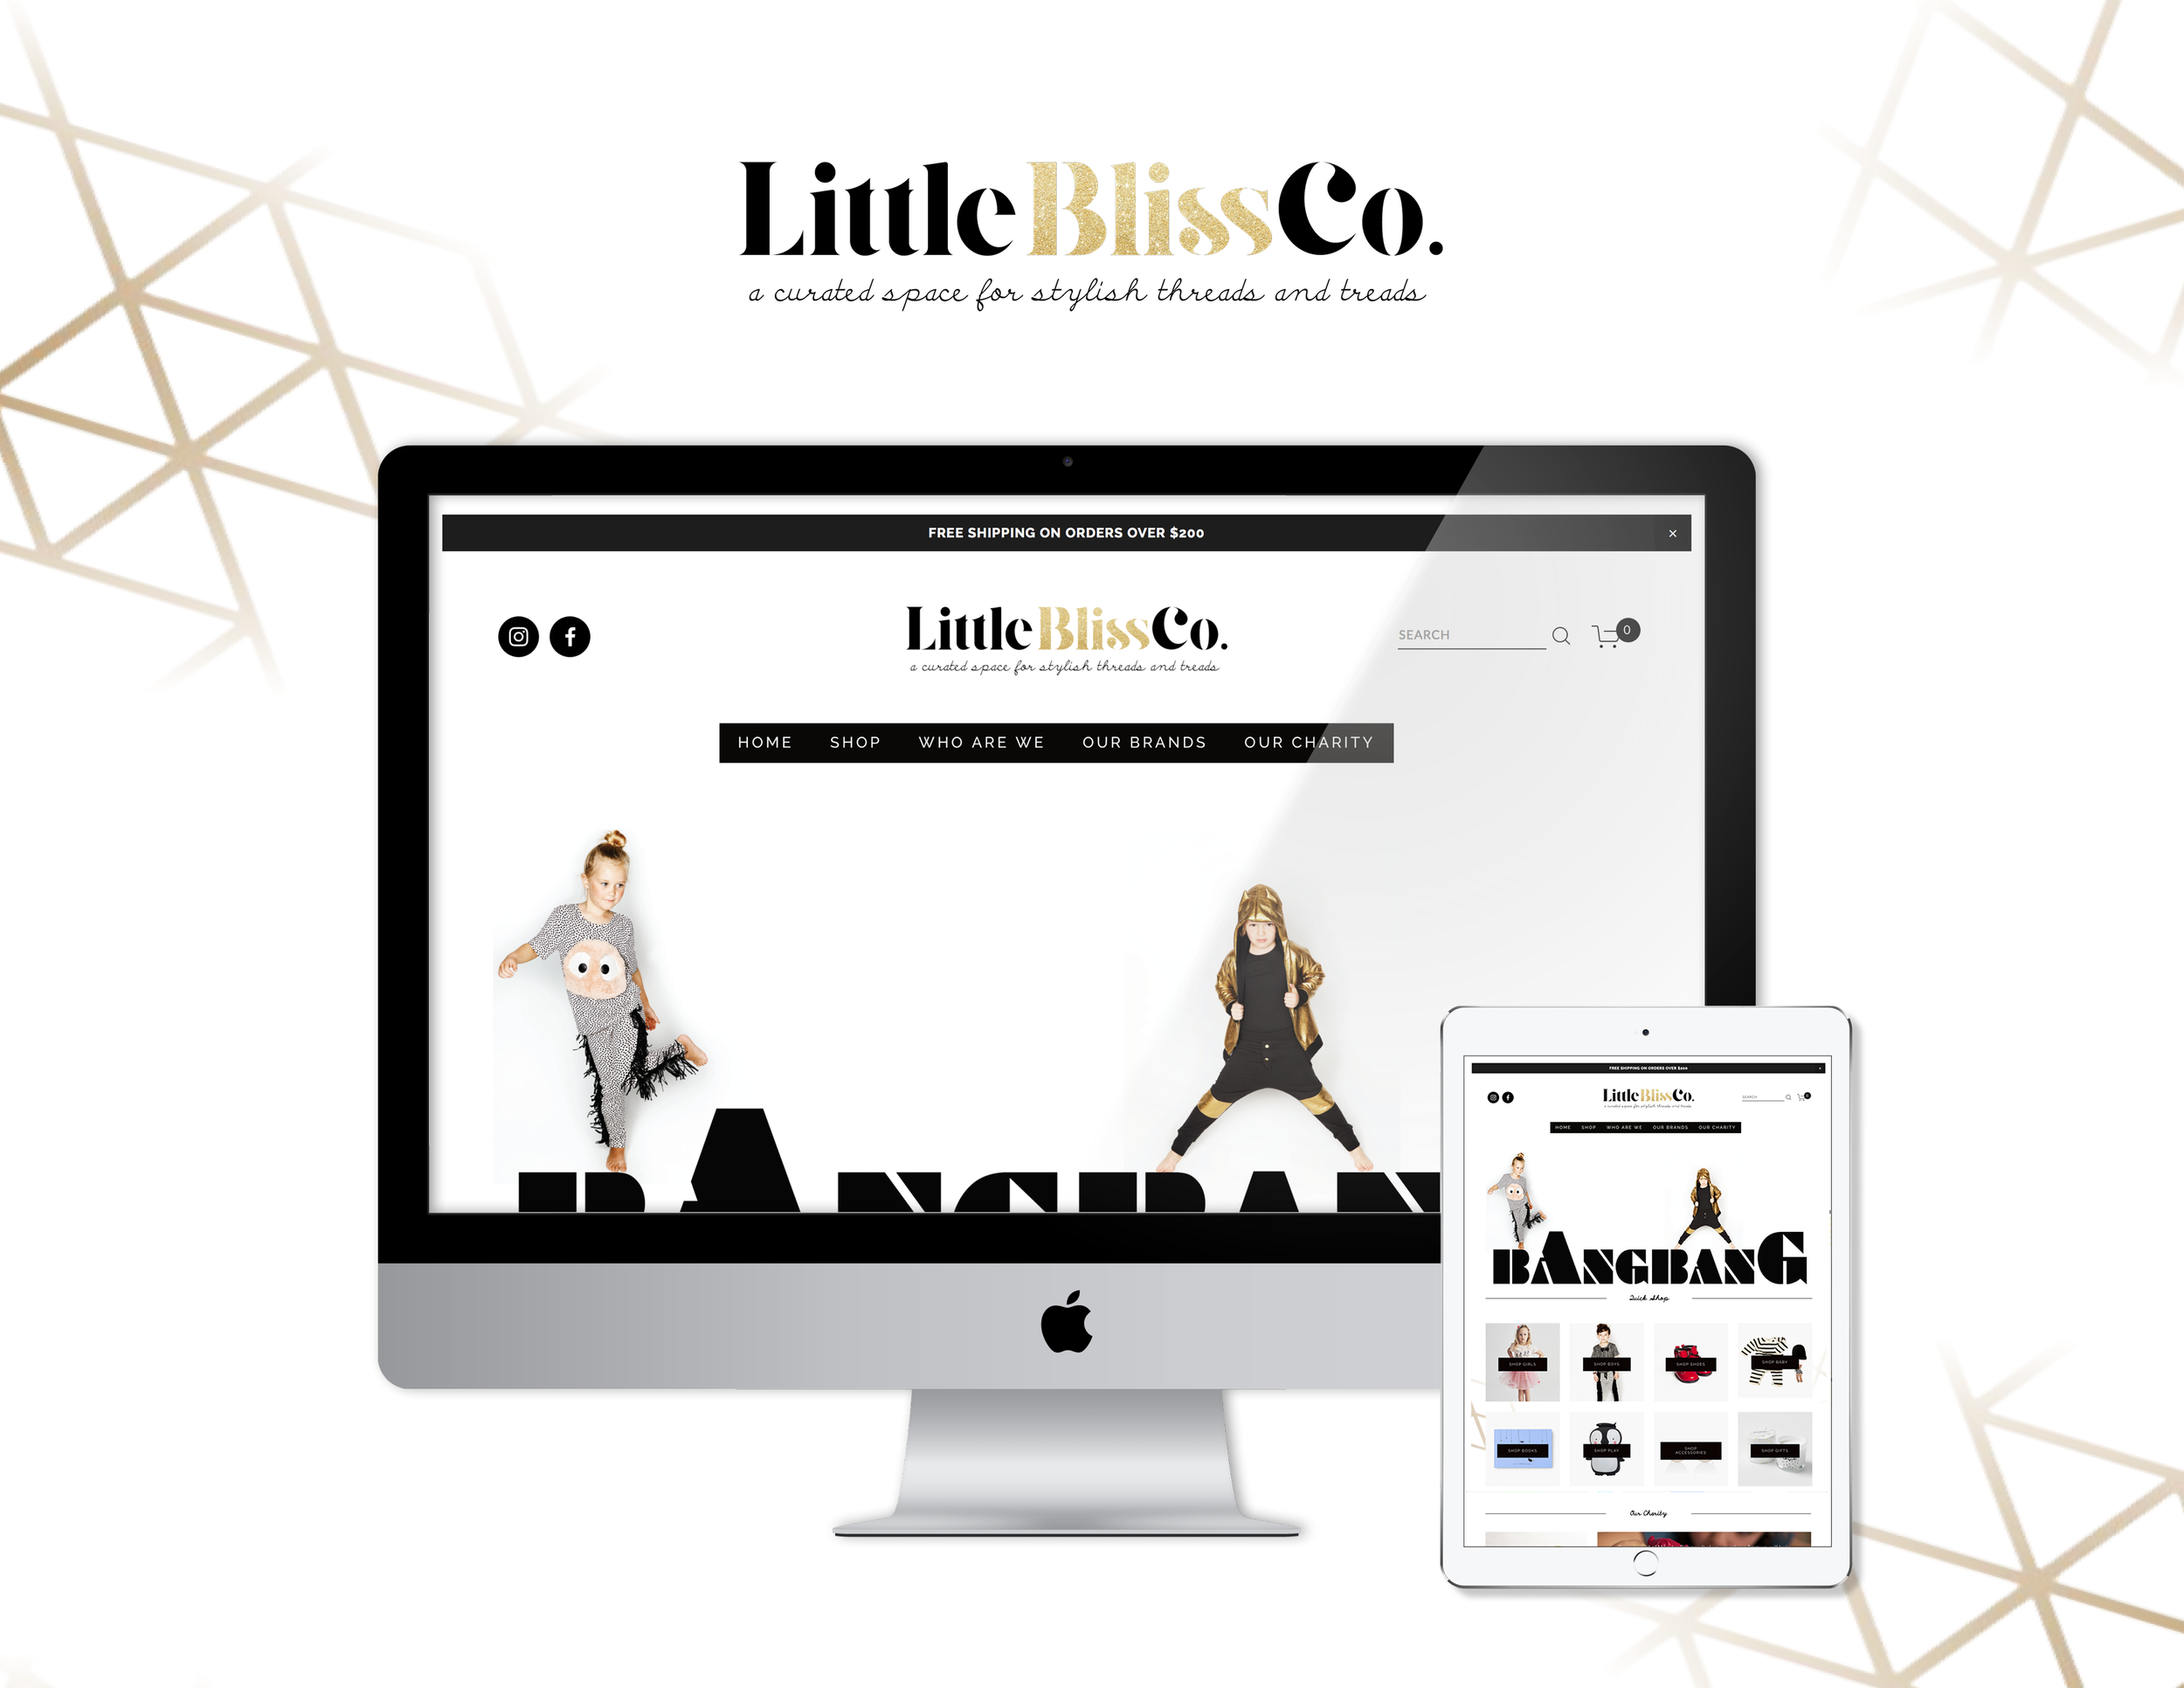 Little Bliss Co. Promotional Ad - Kira Hyde